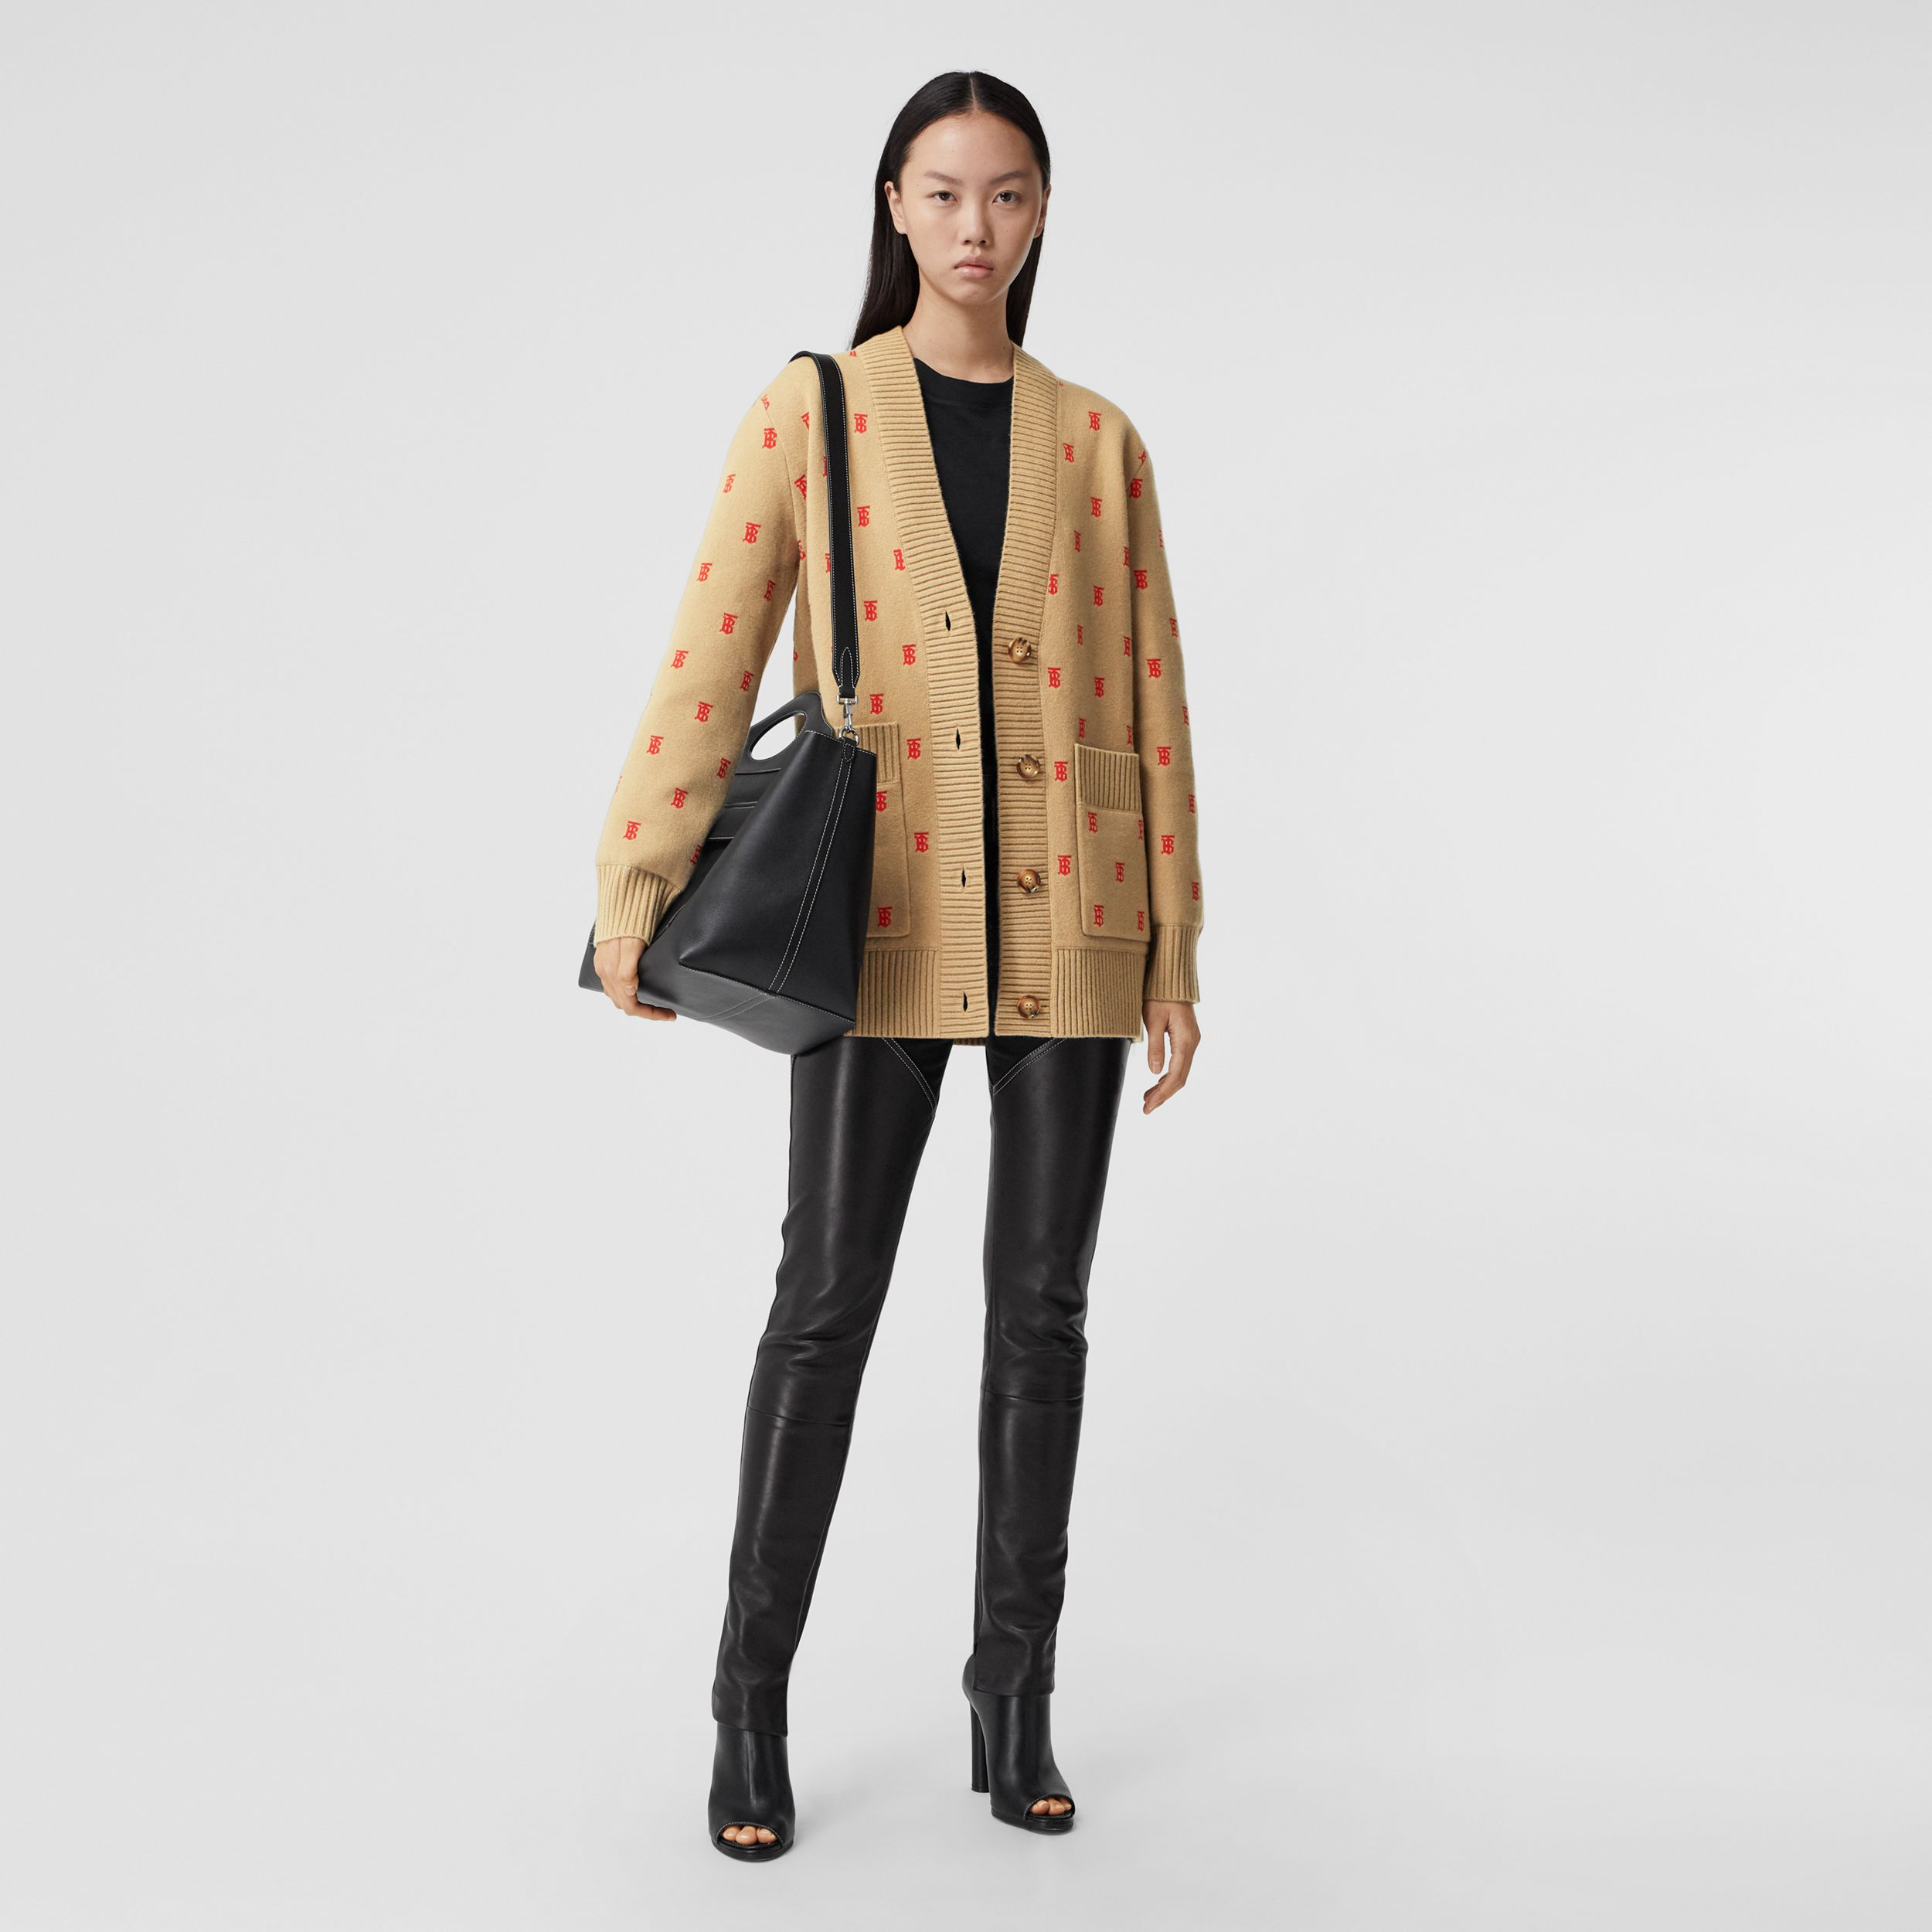 Monogram Wool Cashmere Blend Oversized Cardigan in Archive Beige - Women | Burberry - 1